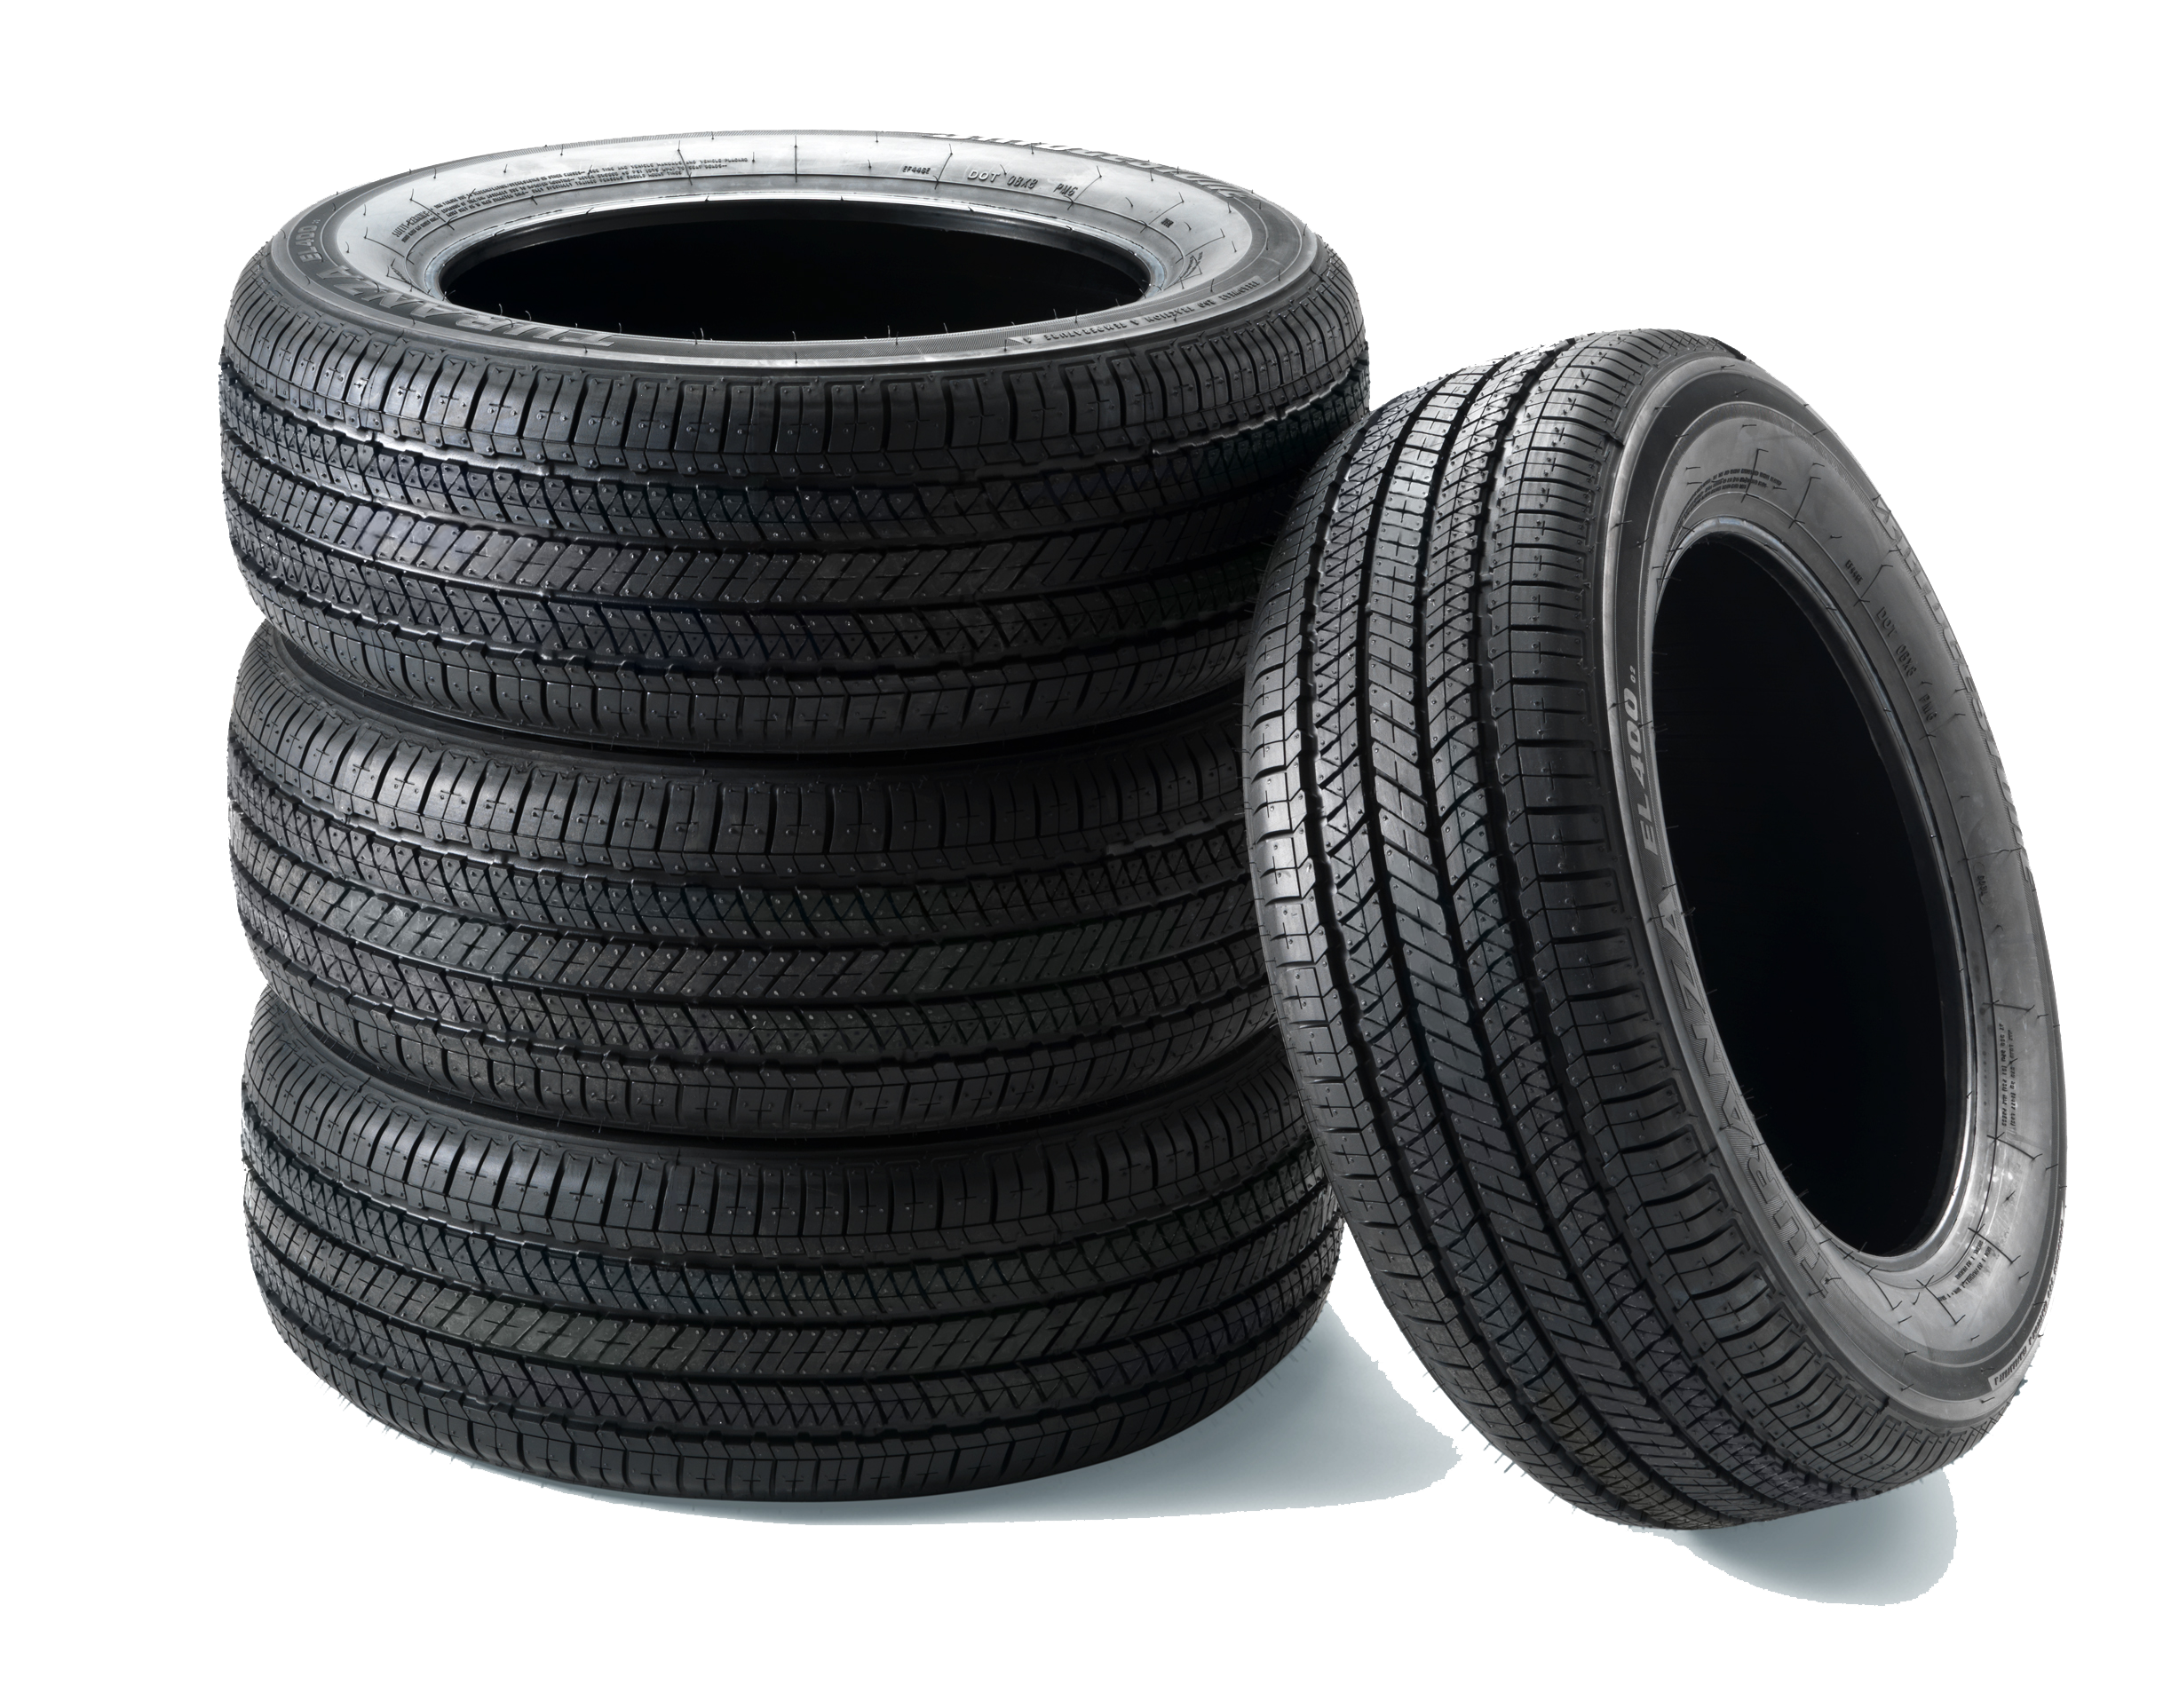 Png images free download. Wheel clipart stacked tire